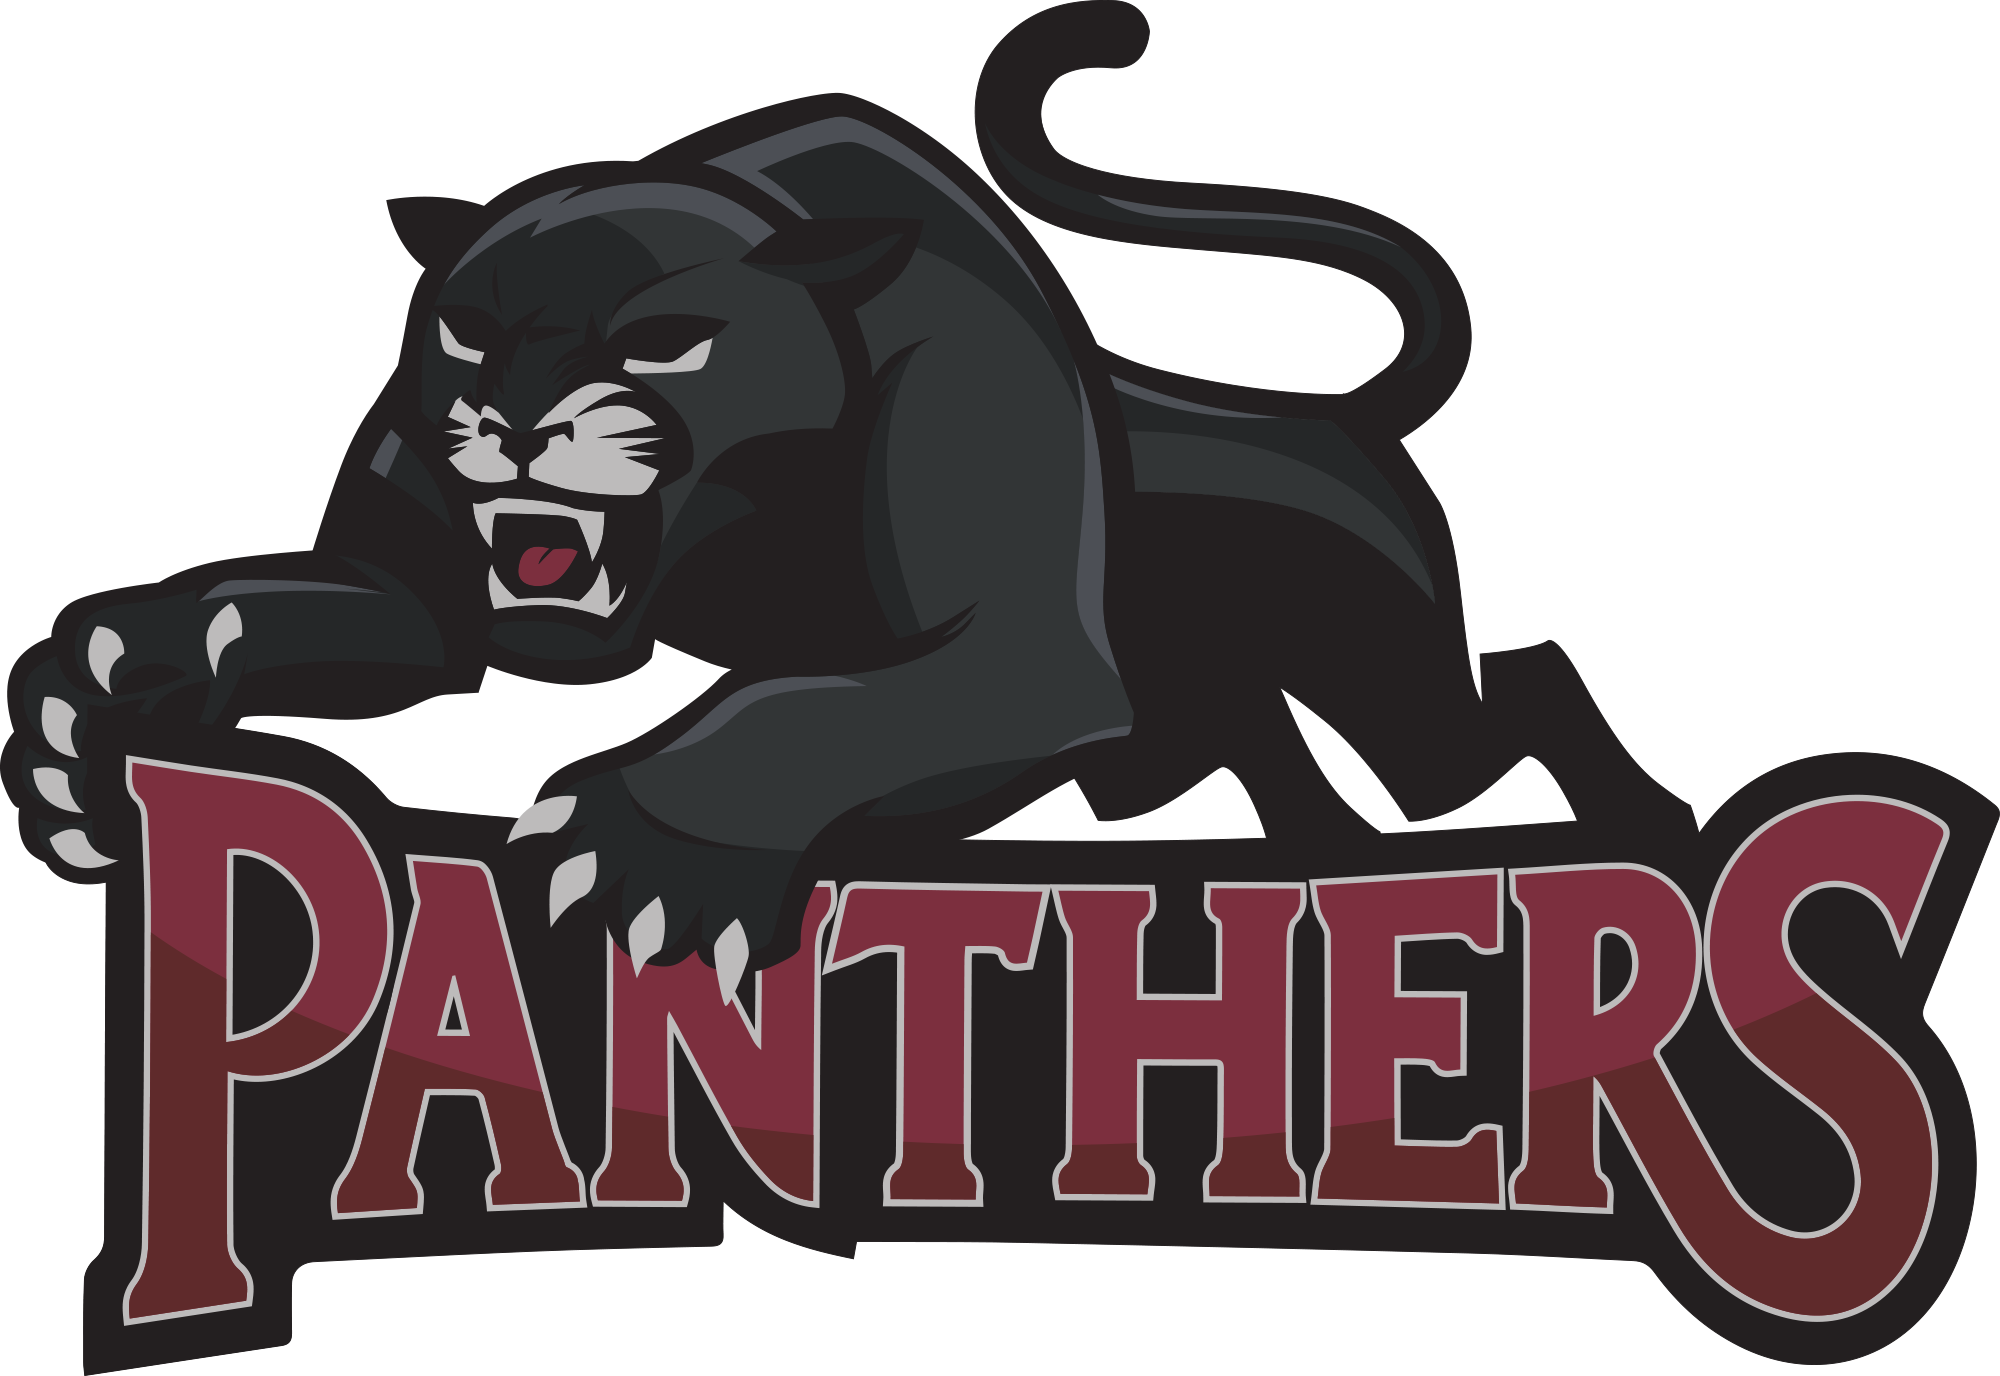 Athletics northeast bradford school. Panther clipart panther basketball